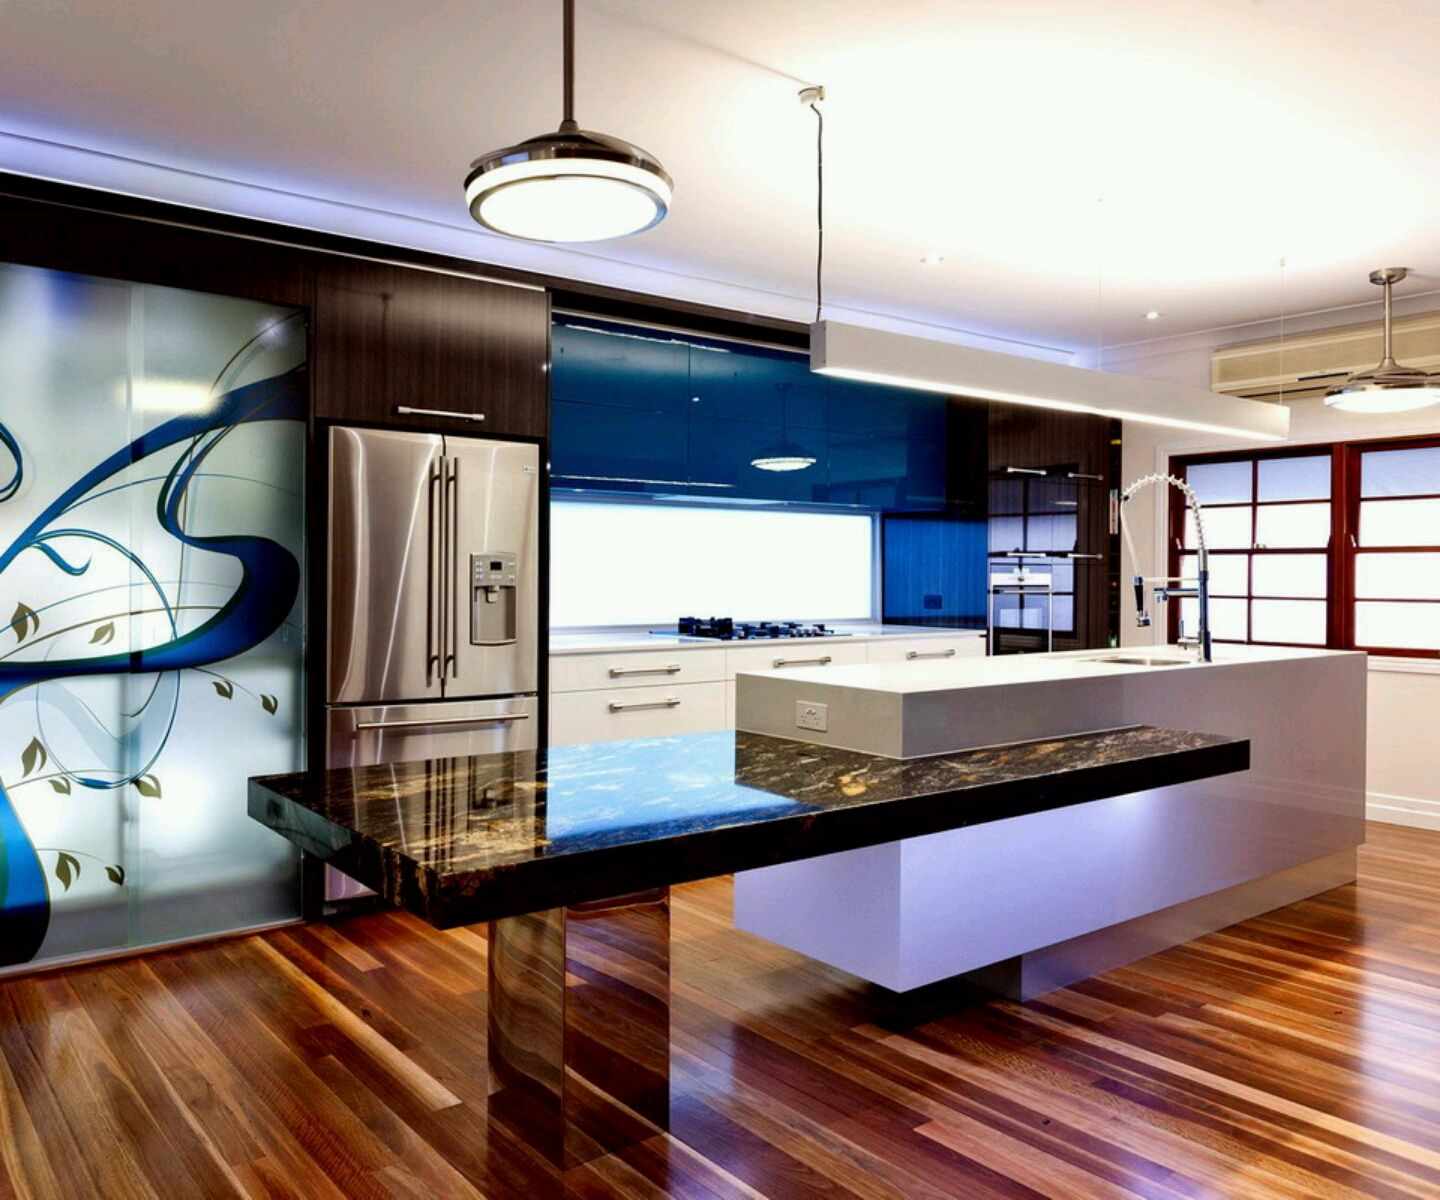 Ultra Modern Kitchen Designs Ideas Kitchen Decor Modern Modern Kitchen Island Design Modern Kitchen Design